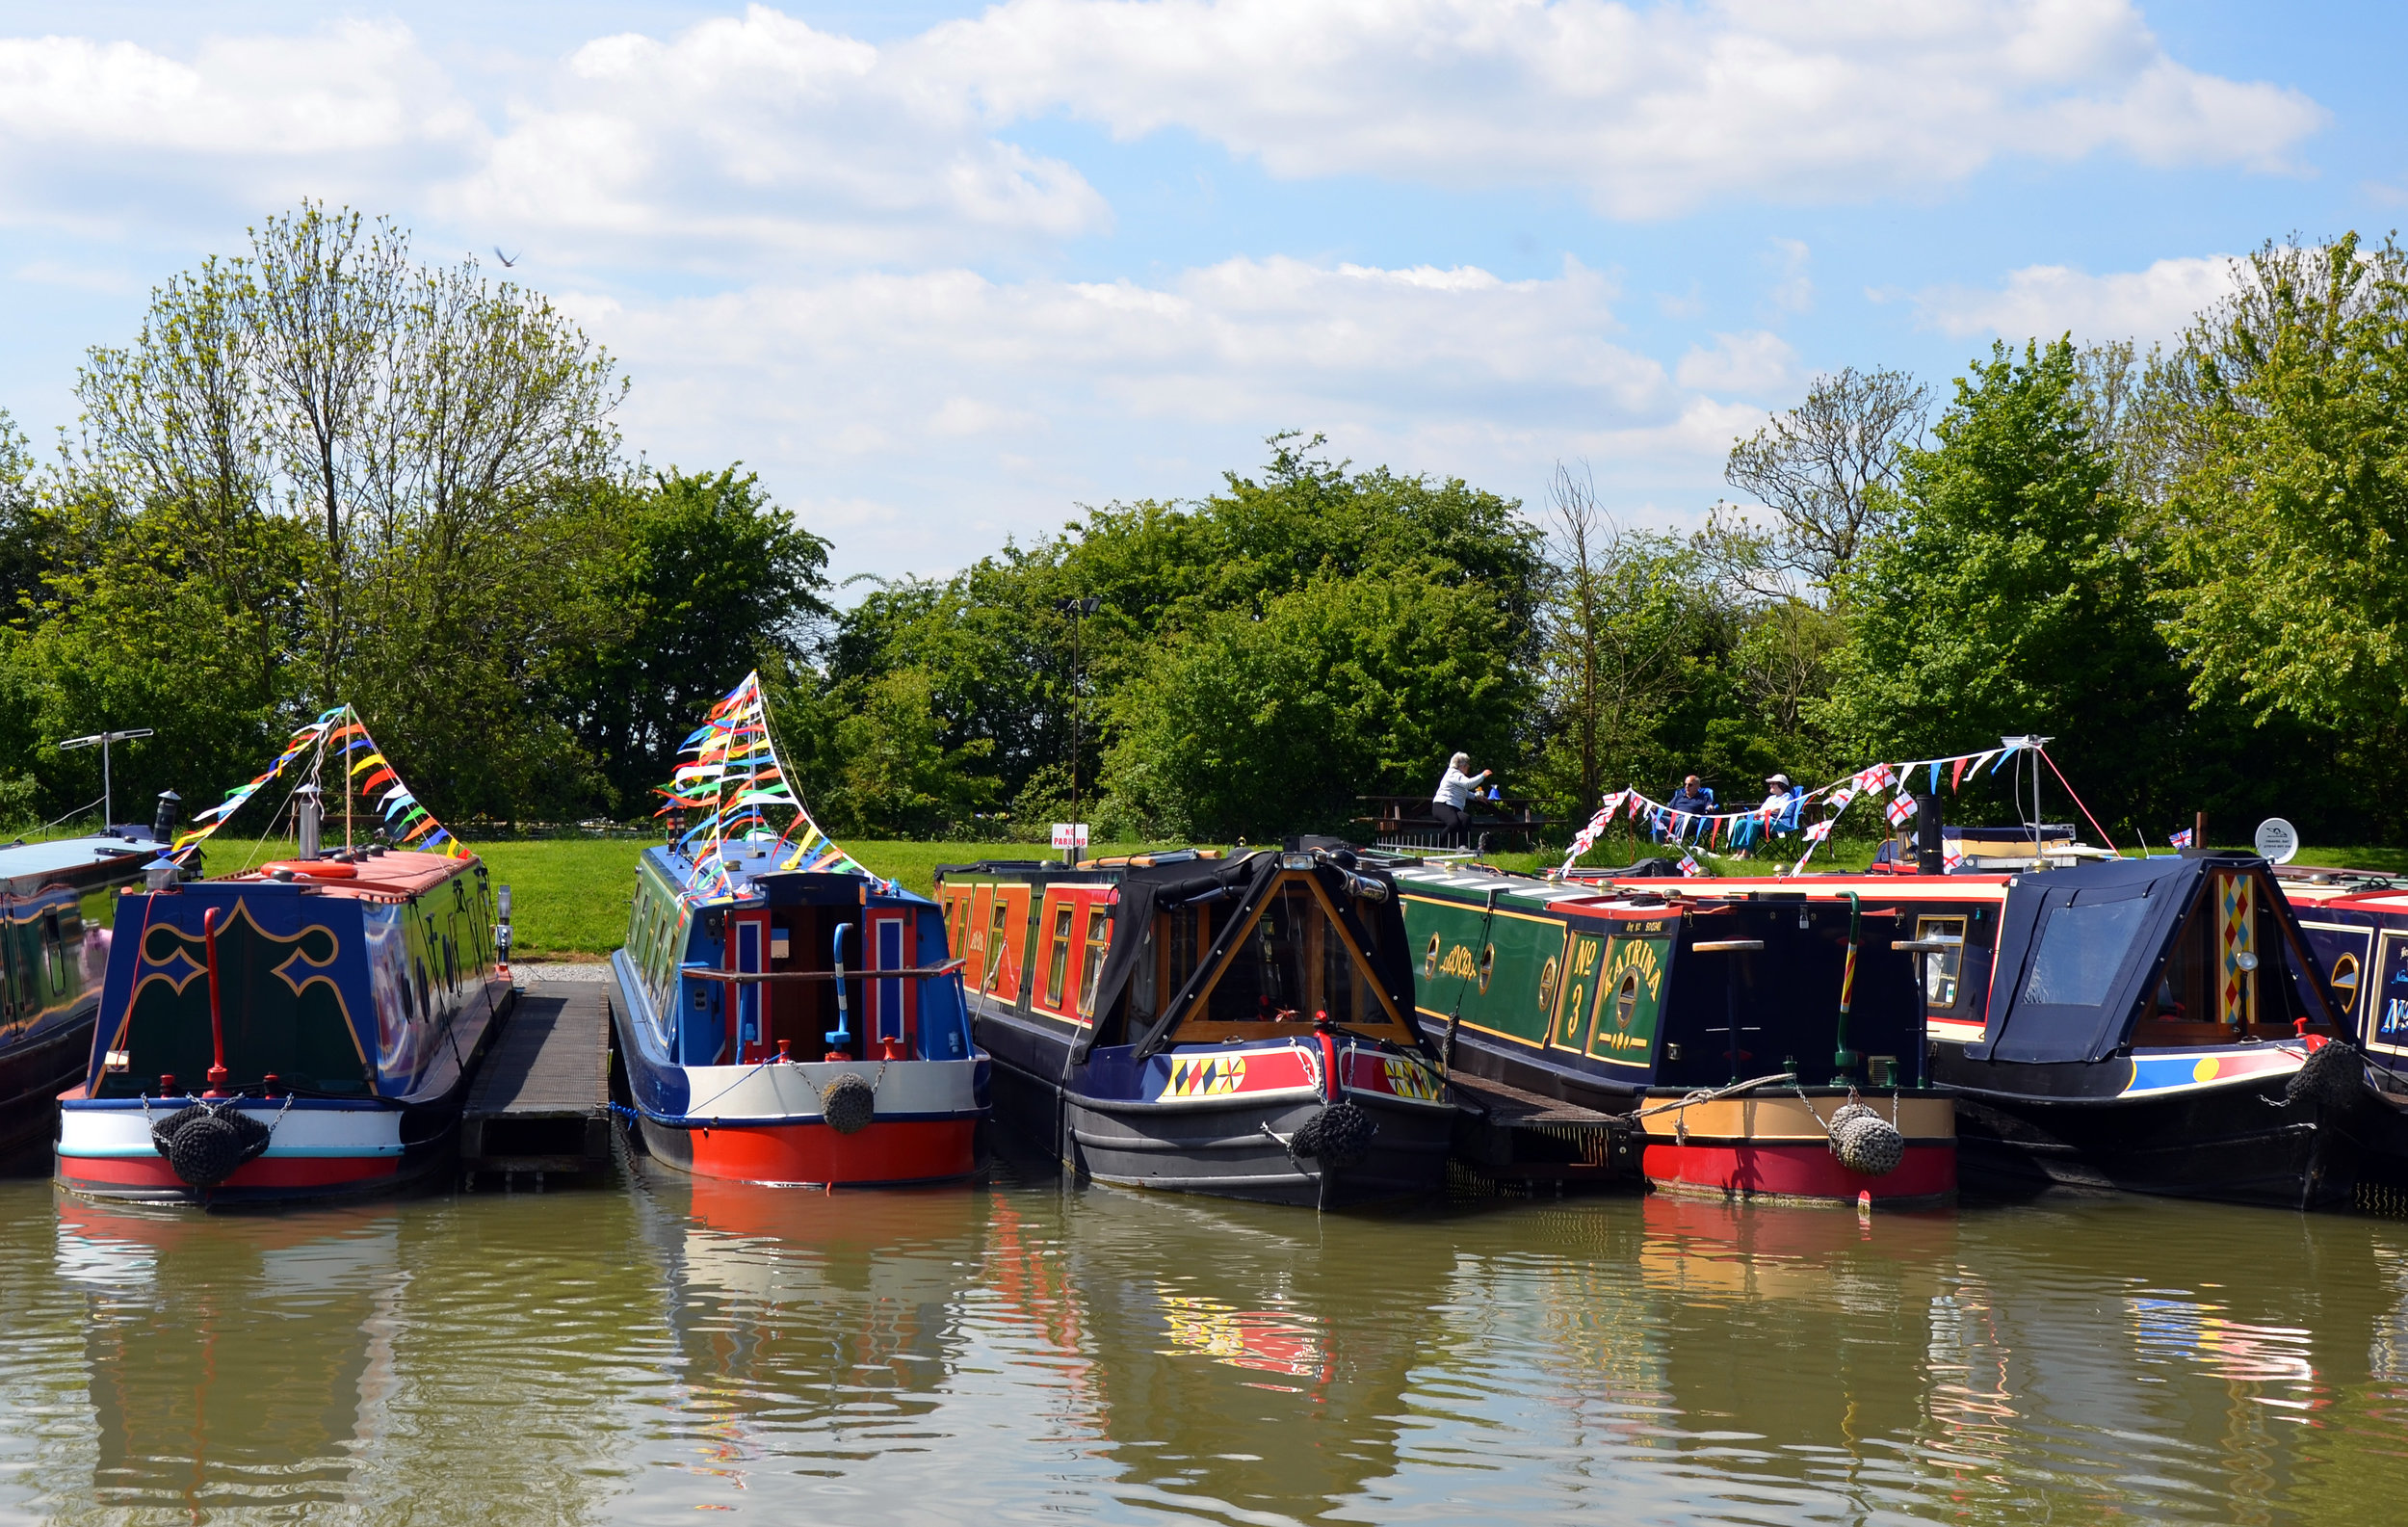 Every narrowboat is as unique as the people who own them! 📷by  Phoebe Smith